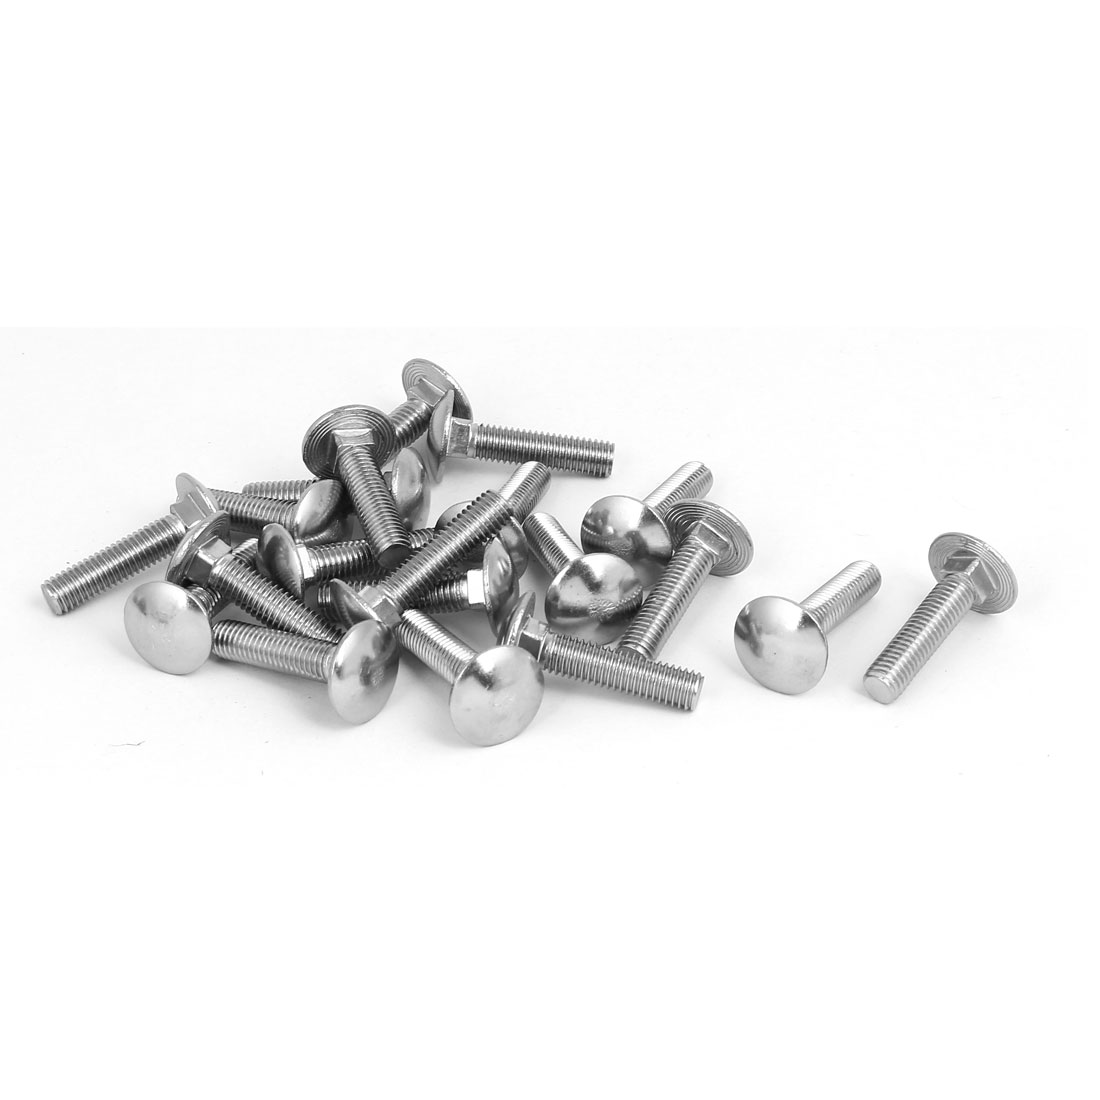 M8x35mm 304 Stainless Steel Round Cap Square Neck Trailer Carriage Bolts 20pcs